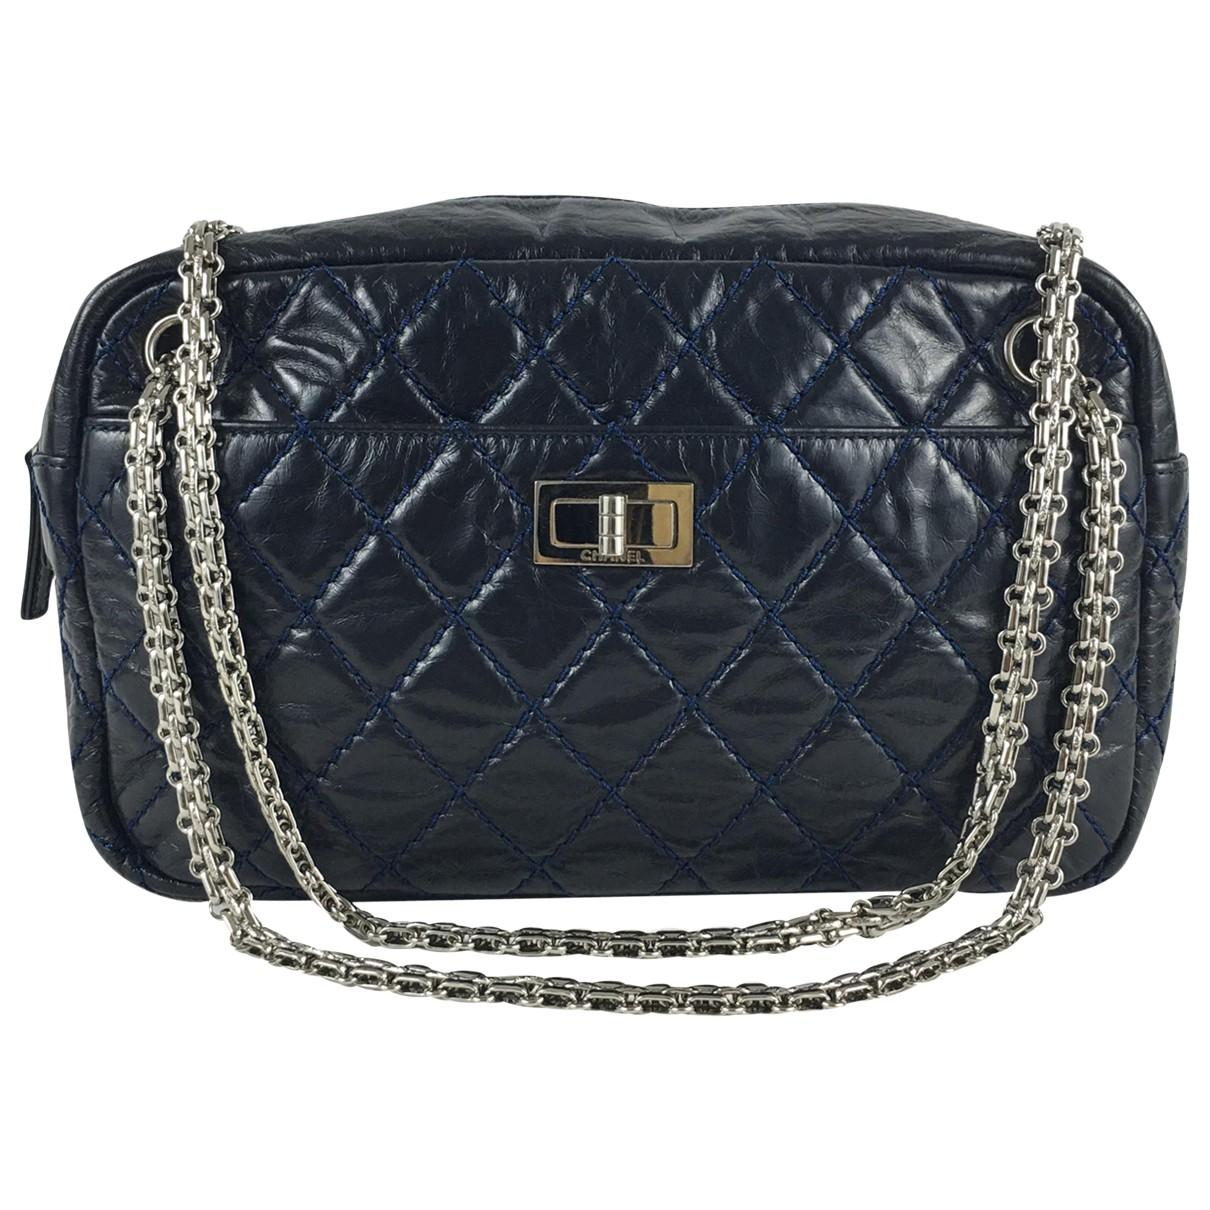 e46bdb2c5176 Pre Owned Chanel Crossbody Bags For Sale | Stanford Center for ...